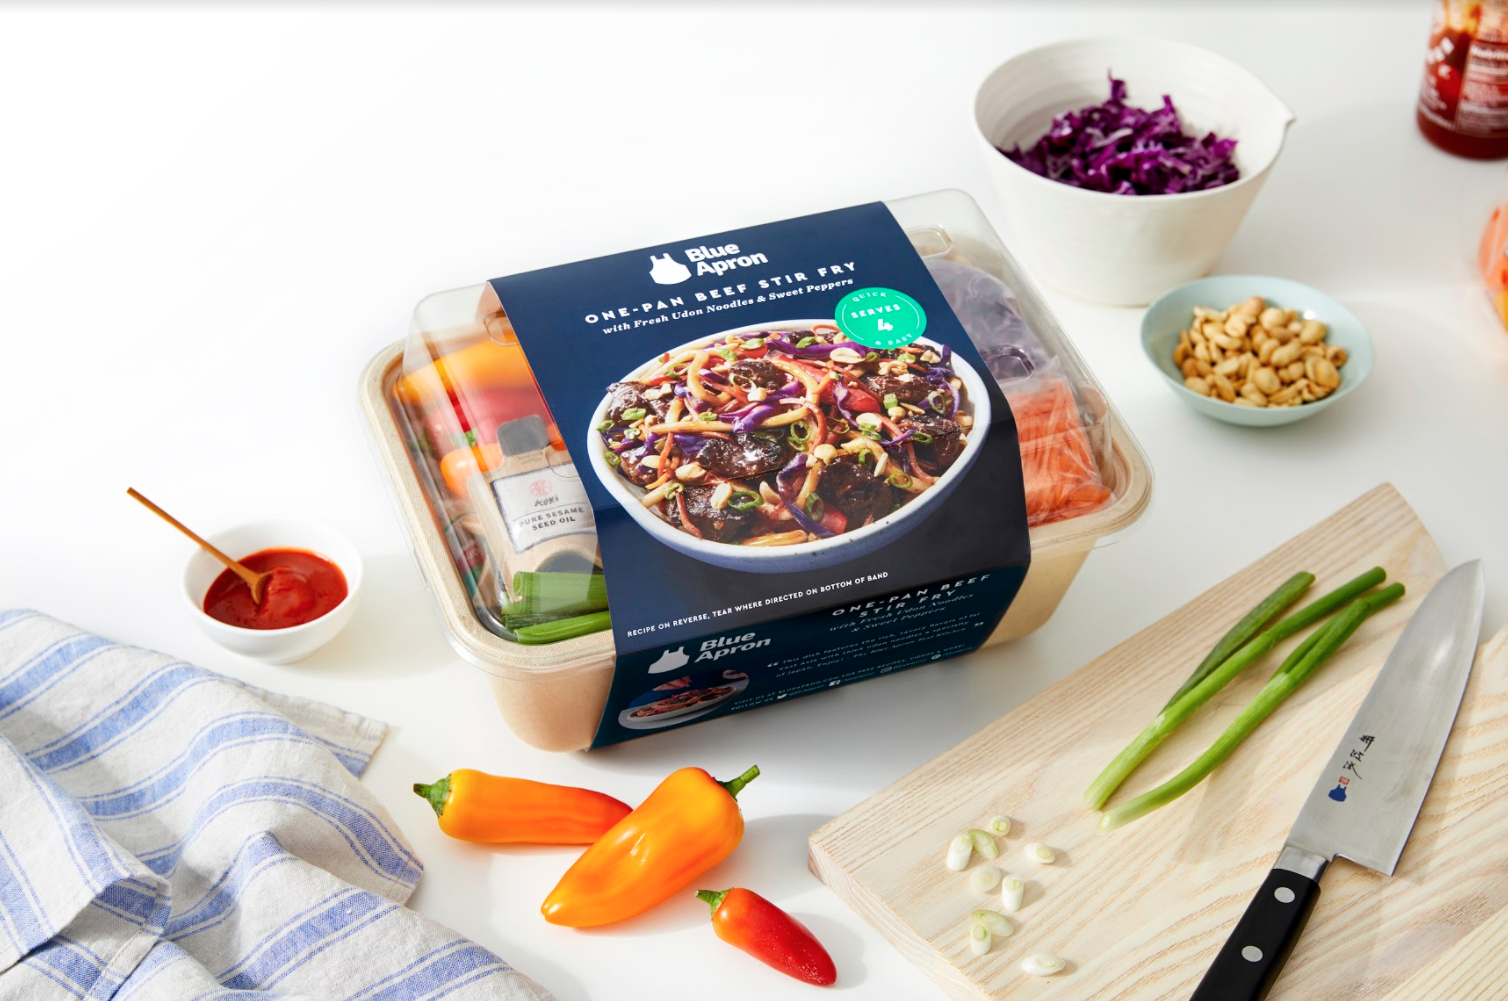 Blue Apron plans to start selling its meal kits in stores